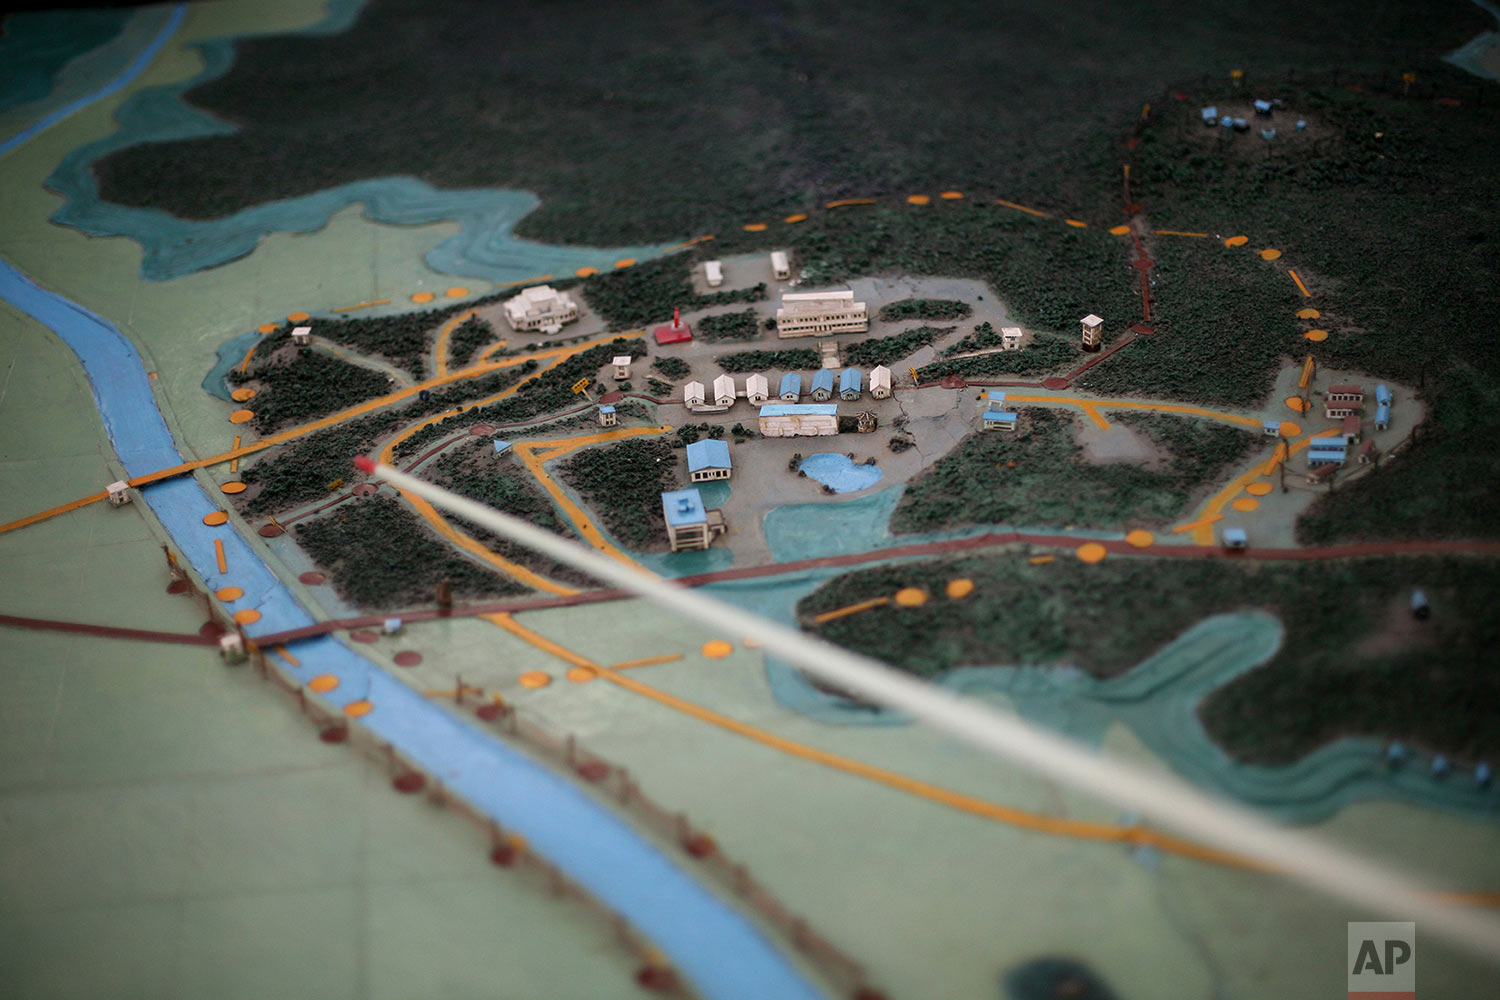 A model of the Demilitarized Zone that separates the two halves of the Korean peninsula is displayed near Kaesong, North Korea, on Sept. 18, 2008. (AP Photo/David Guttenfelder)